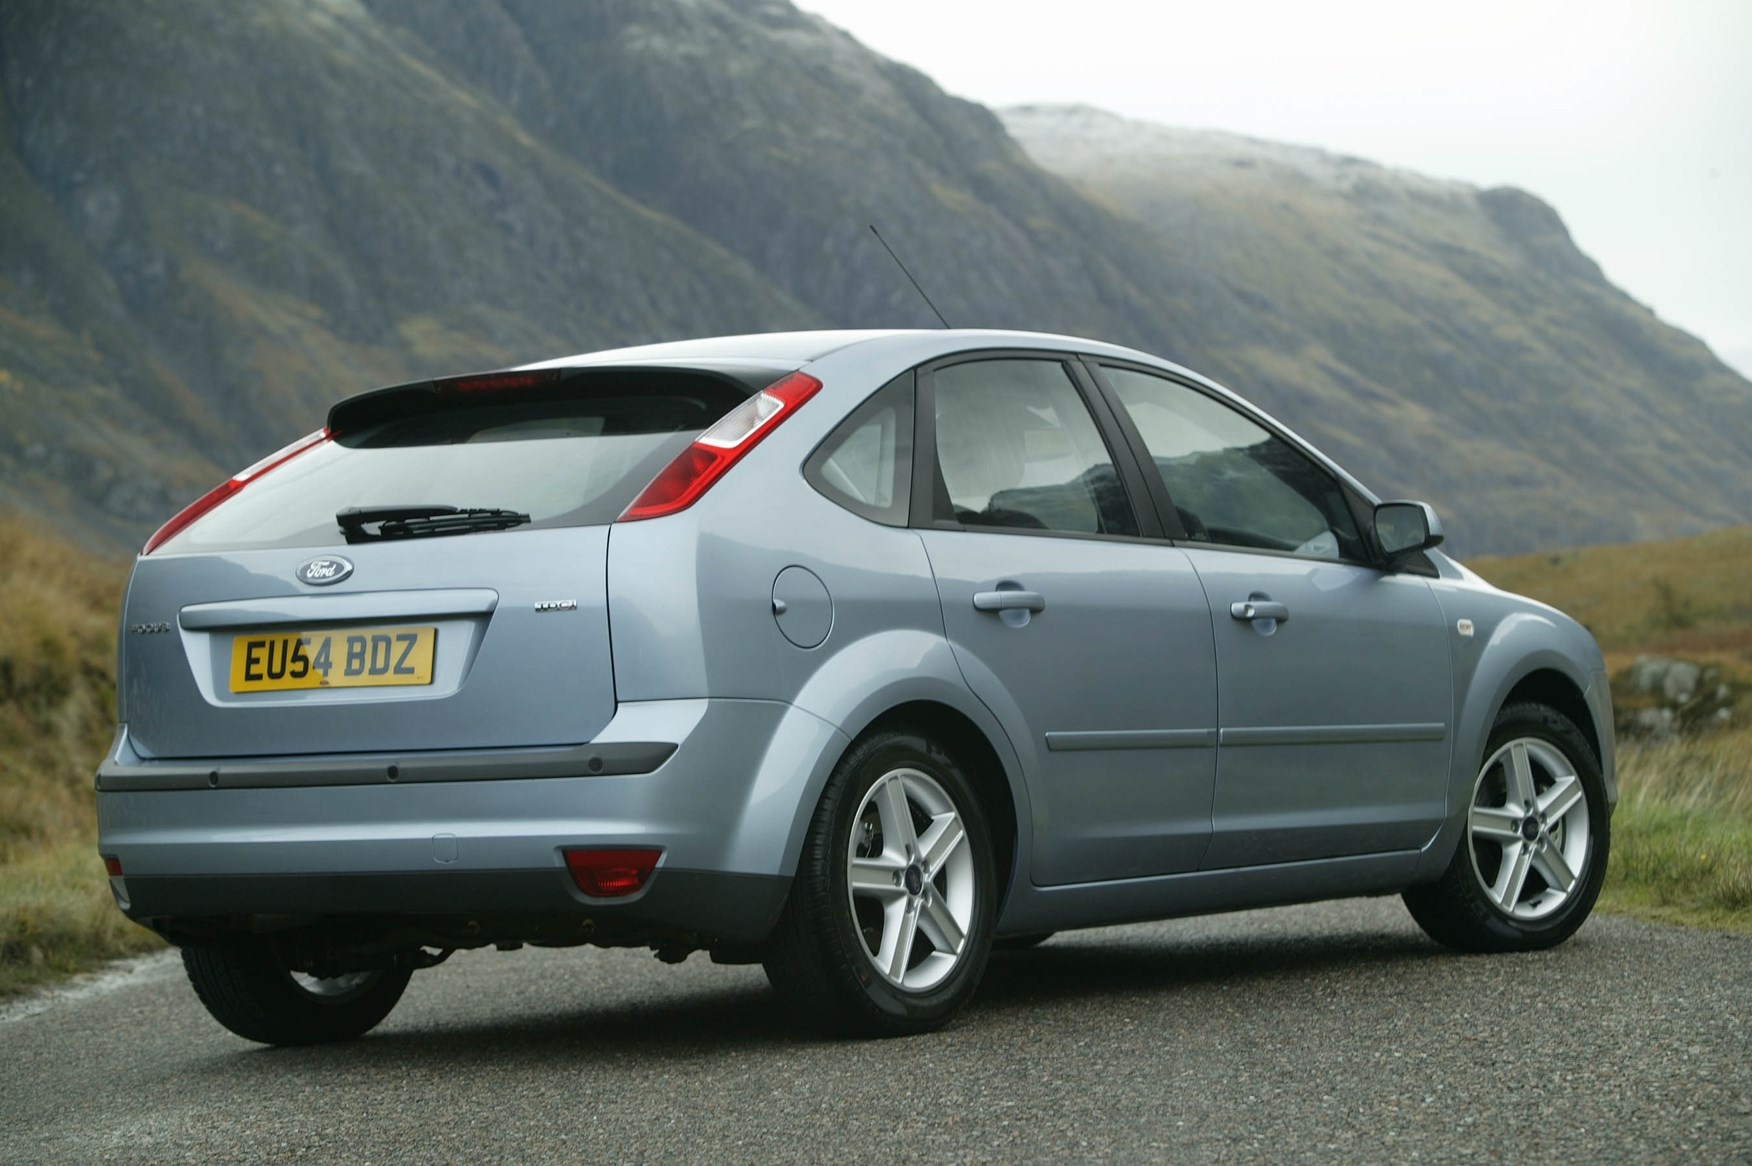 Honda Civic 2012 >> Ford Focus Hatchback (2005 - 2011) Features, Equipment and Accessories | Parkers